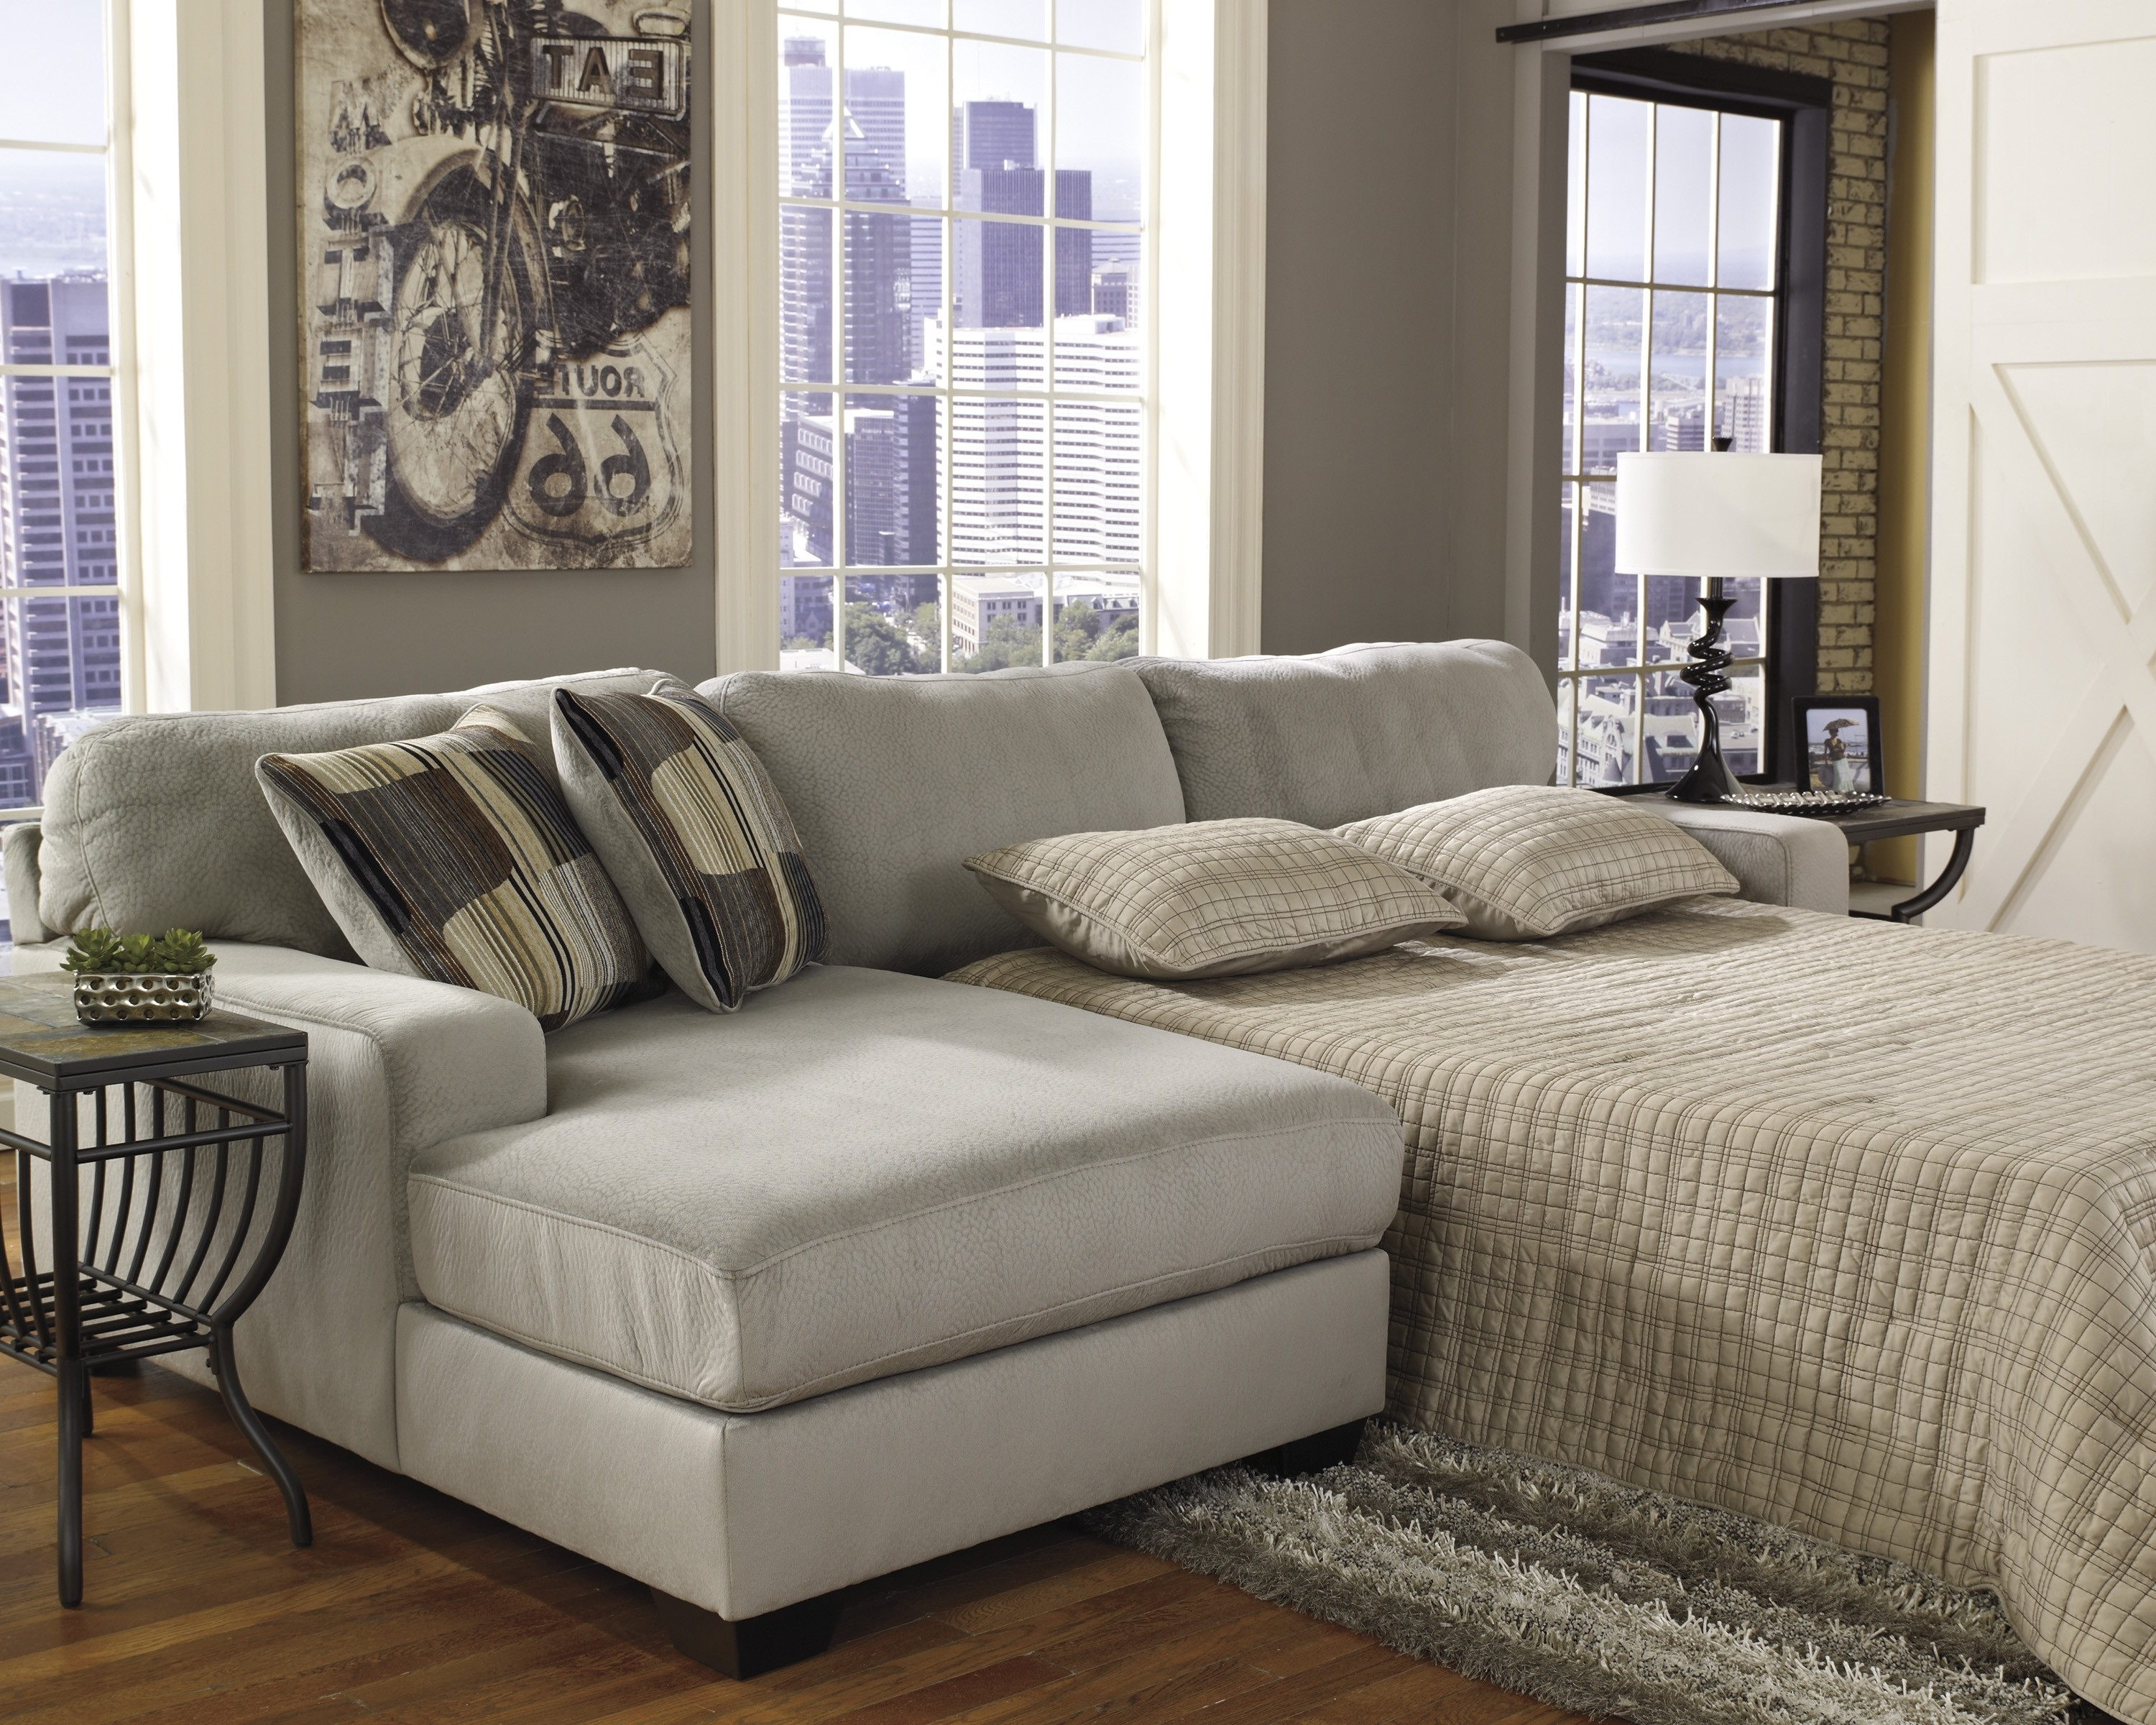 Adjustable Sectional Sofas With Queen Bed Intended For Current Sofa : Wonderful Sectional Sofa Queen Bed Russ Sectional Sofa (View 6 of 15)